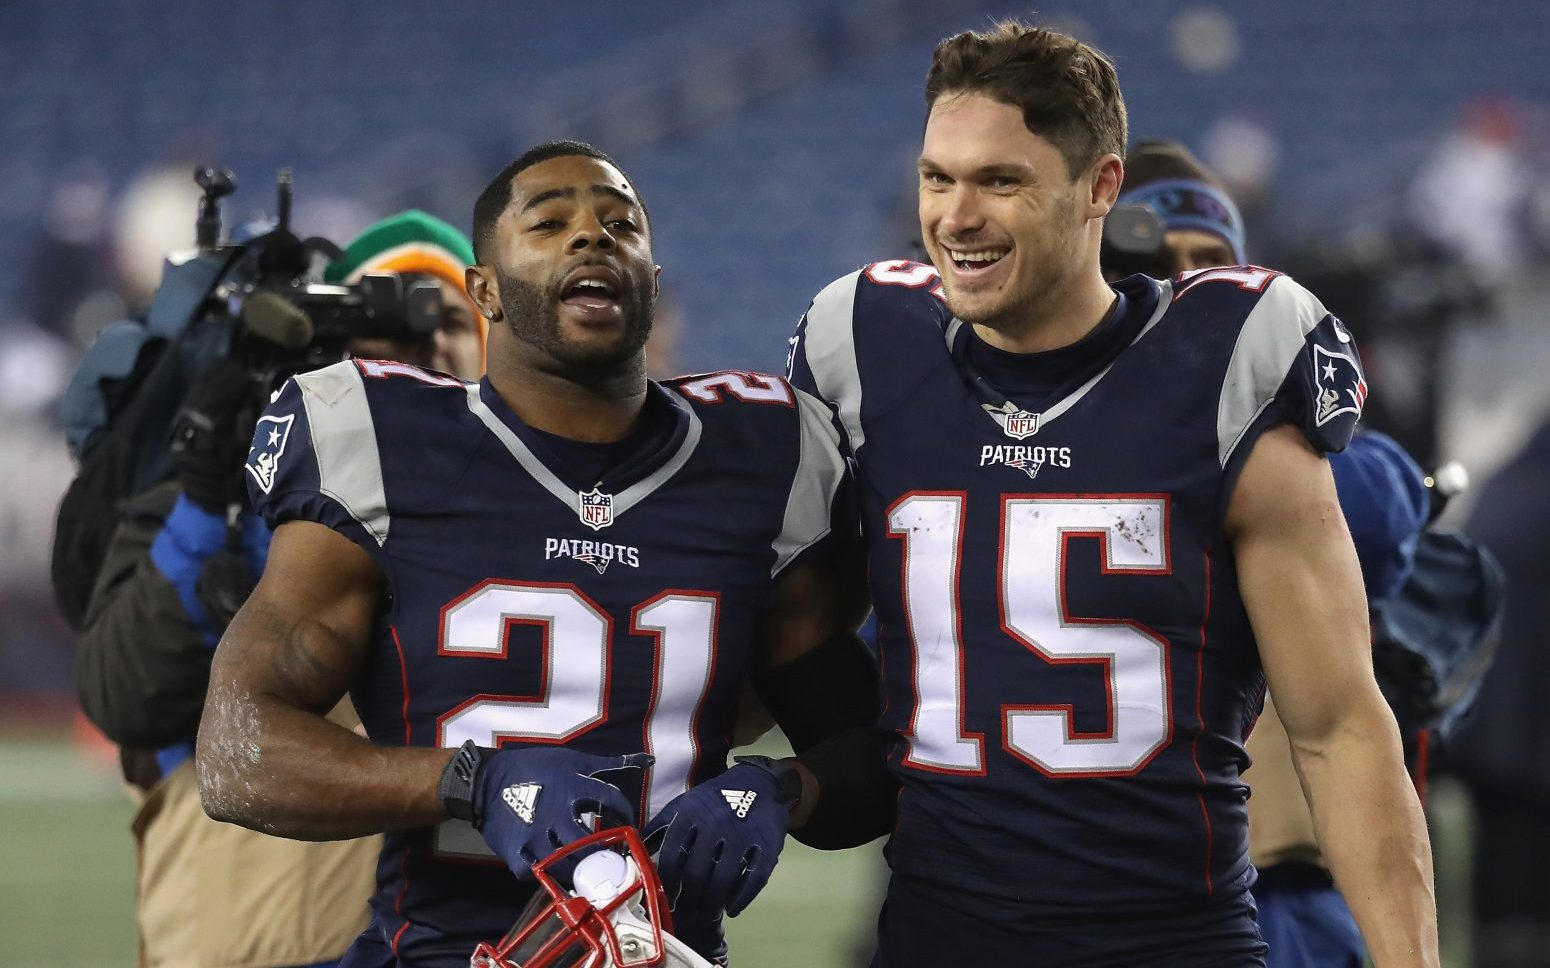 Malcolm Butler (21) and Chris Hogan (15) of the New England Patriots react as they walk off the field after defeating the Baltimore Ravens, 30-23, at Gillette Stadium on December 12, 2016. (Getty Images)